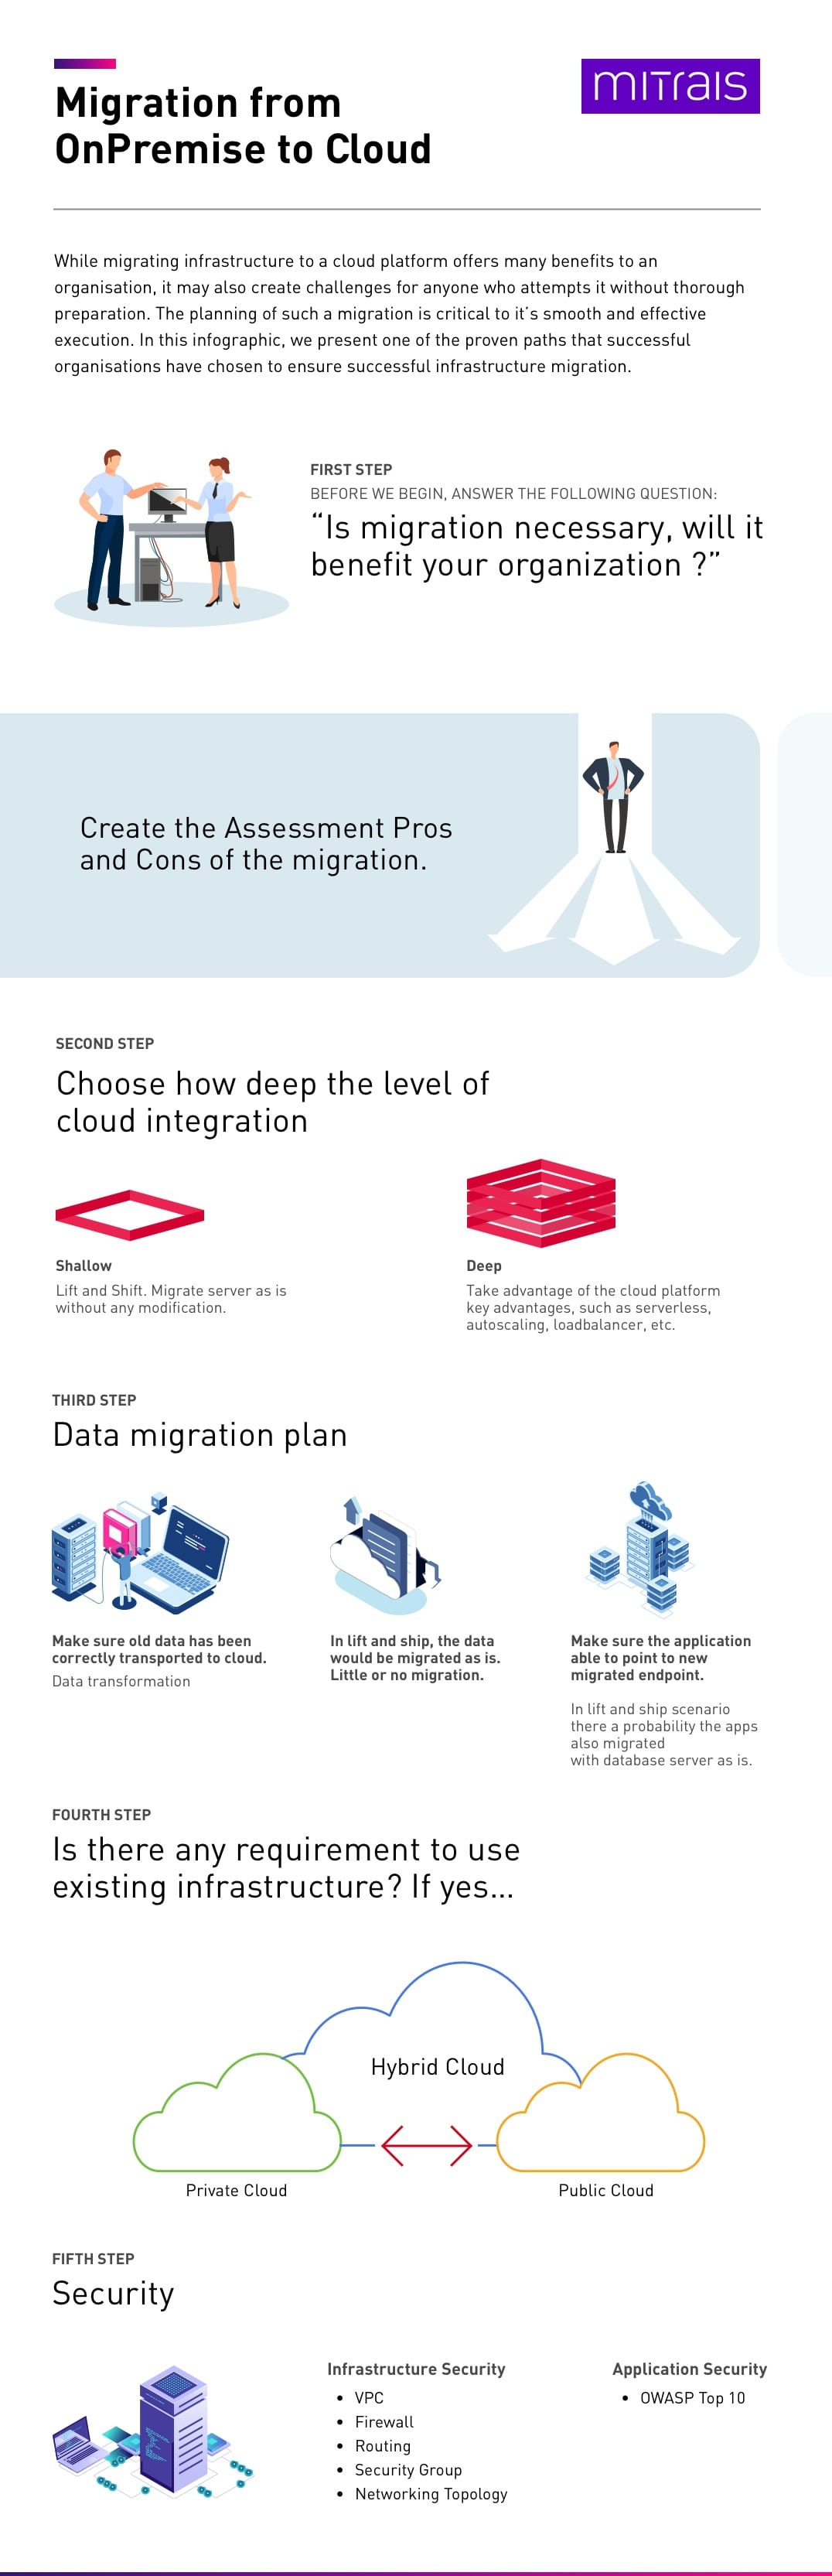 Is migration necessary? Will it benefit your organization? This infographic presents one path that can be used as starting point for organization to migrate to cloud.